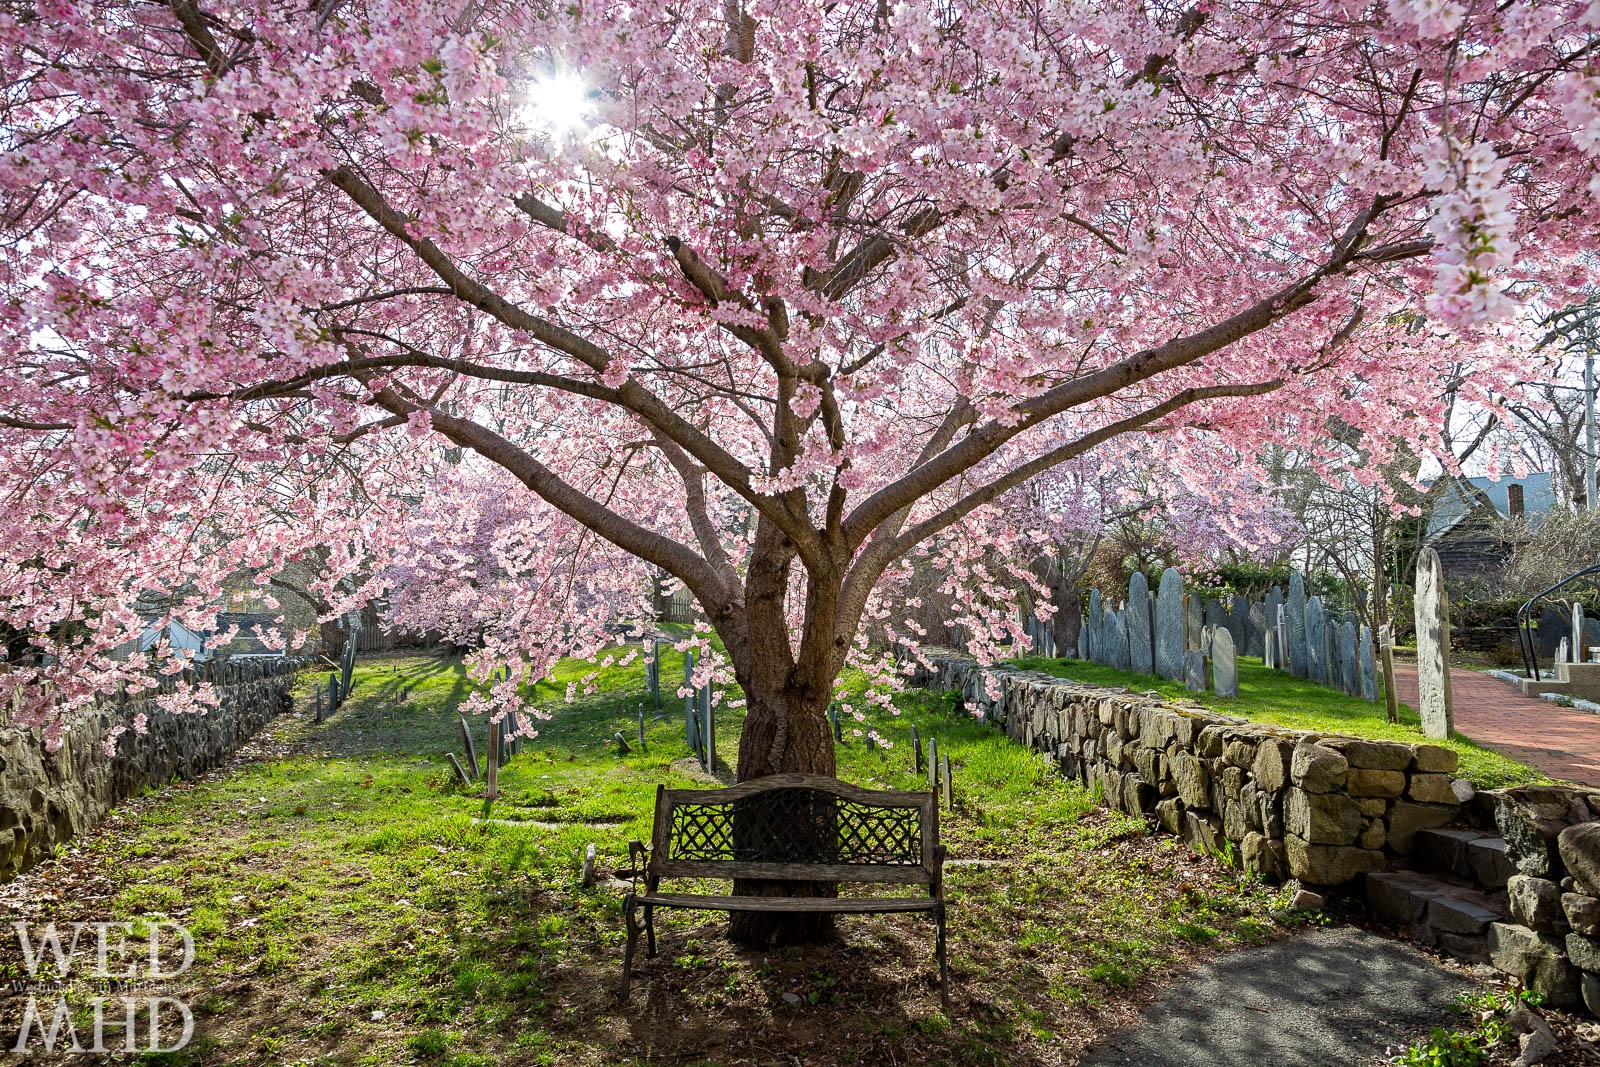 The Bench under the Cherry Blossoms at Harris Street Cemetery